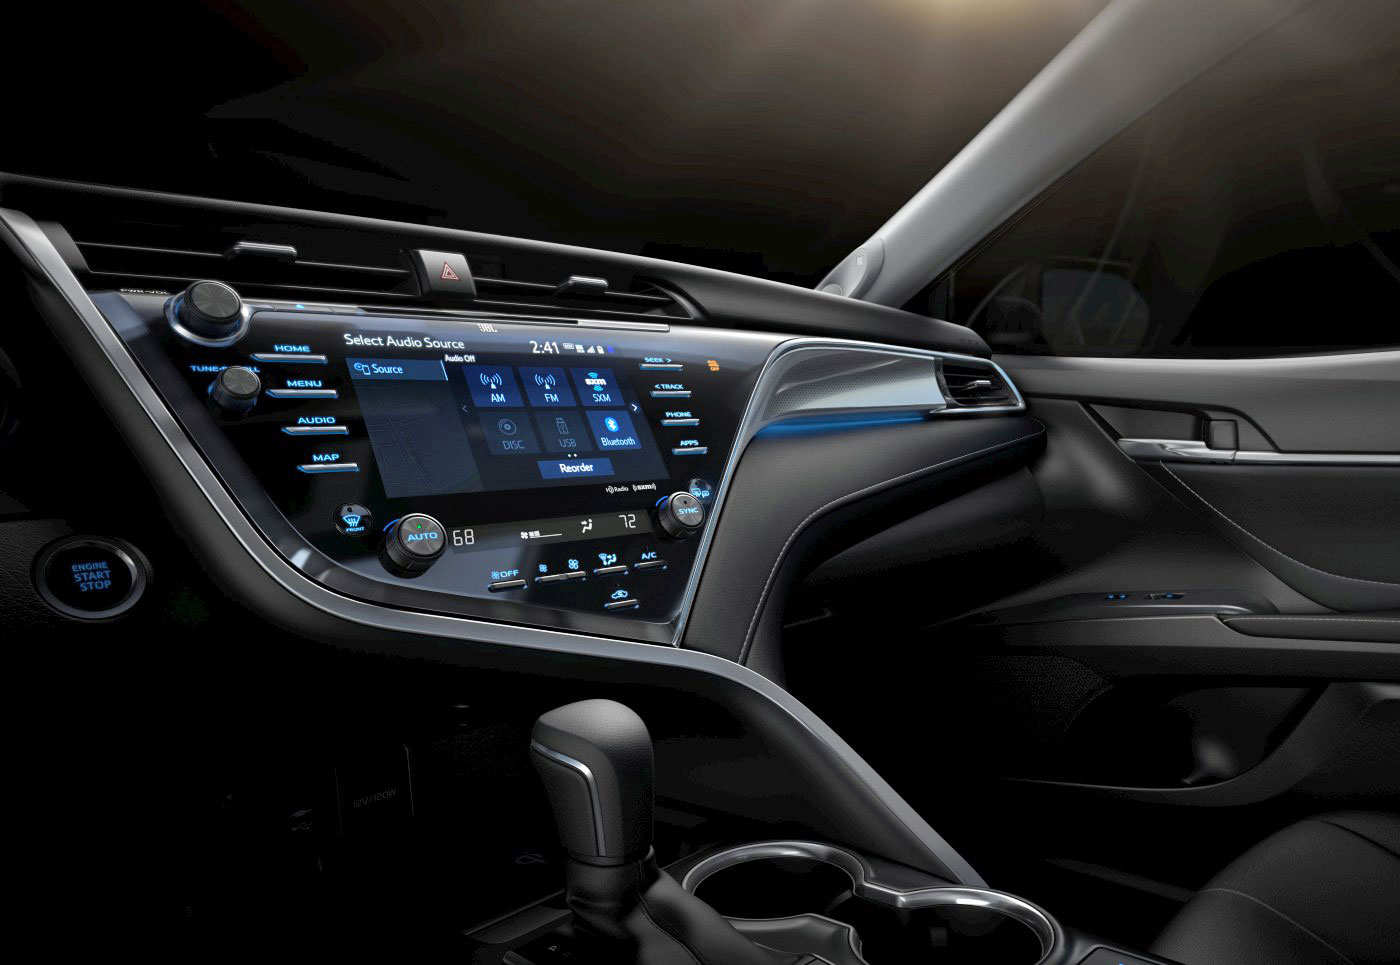 Toyota's latest infotainment system is powered by Linux